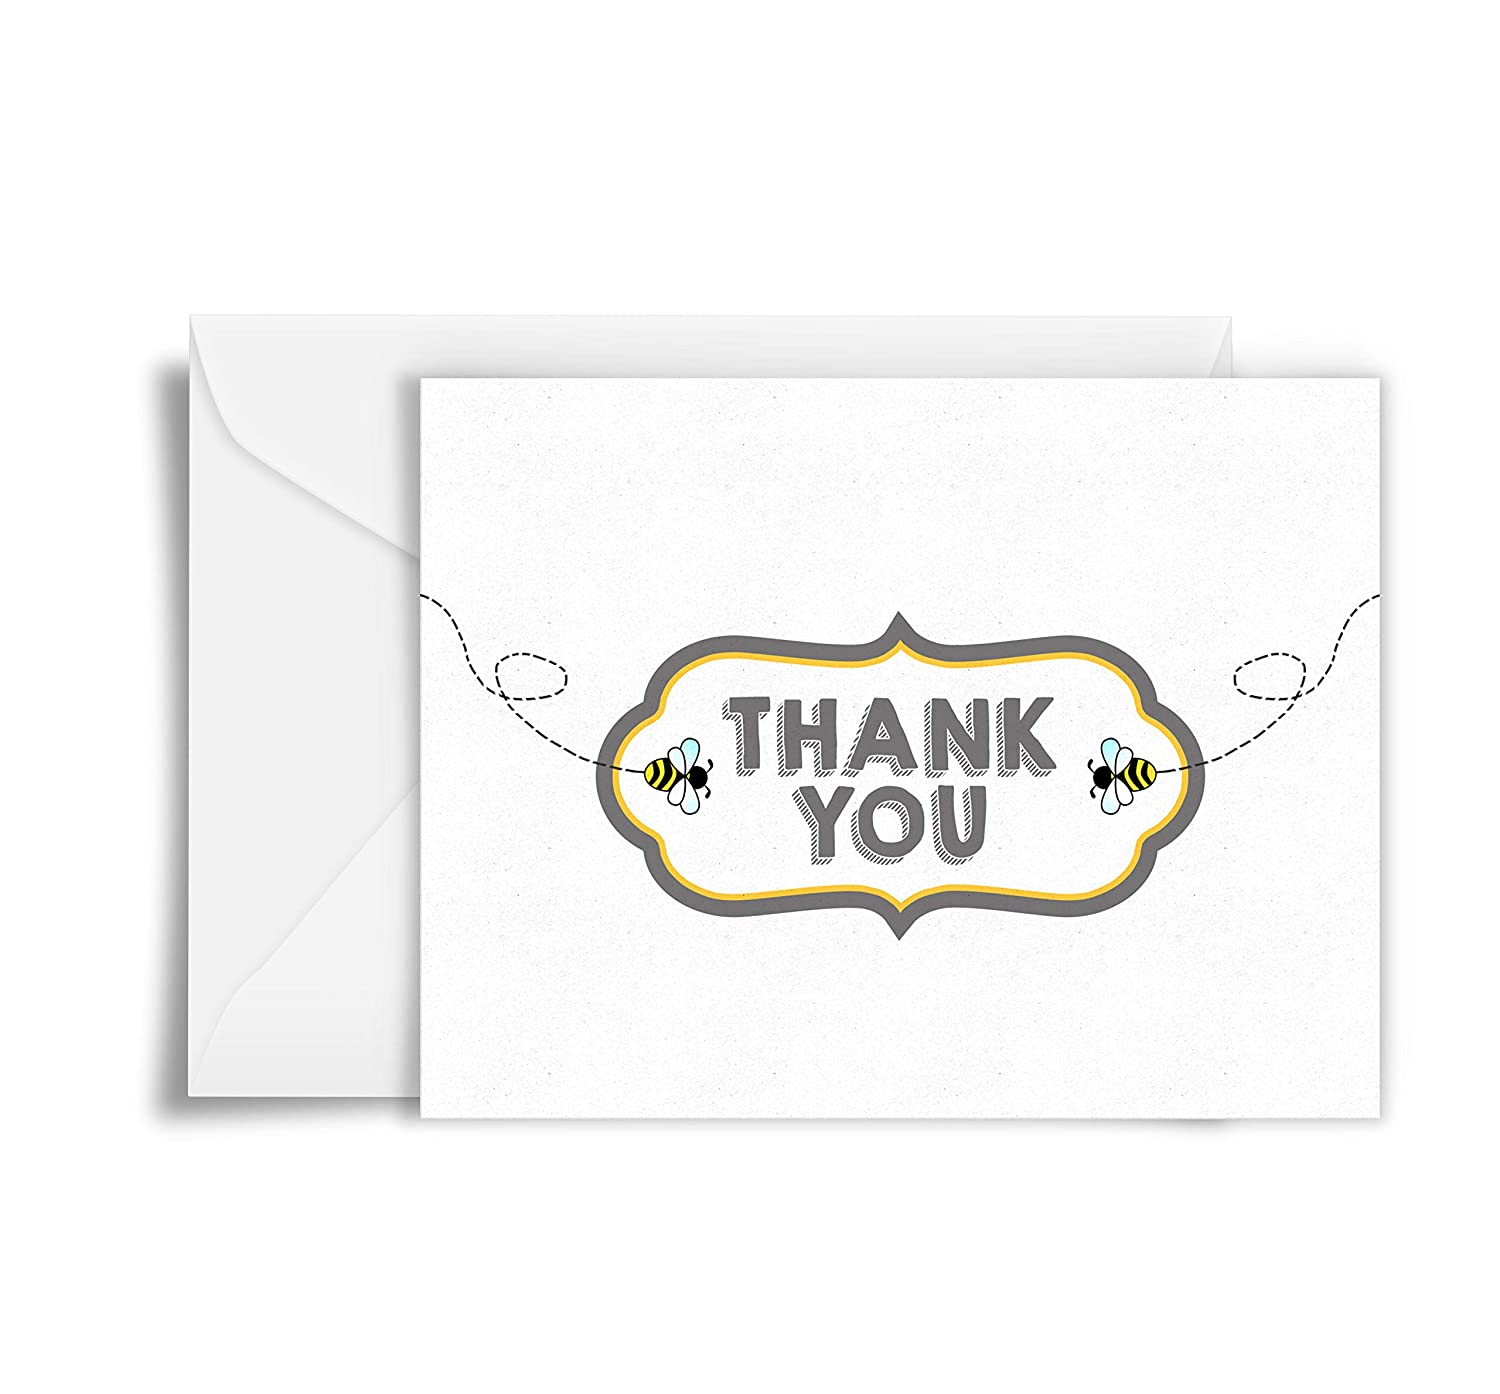 Honey Bee Thank You Cards - set of 20 Cards with Envelopes